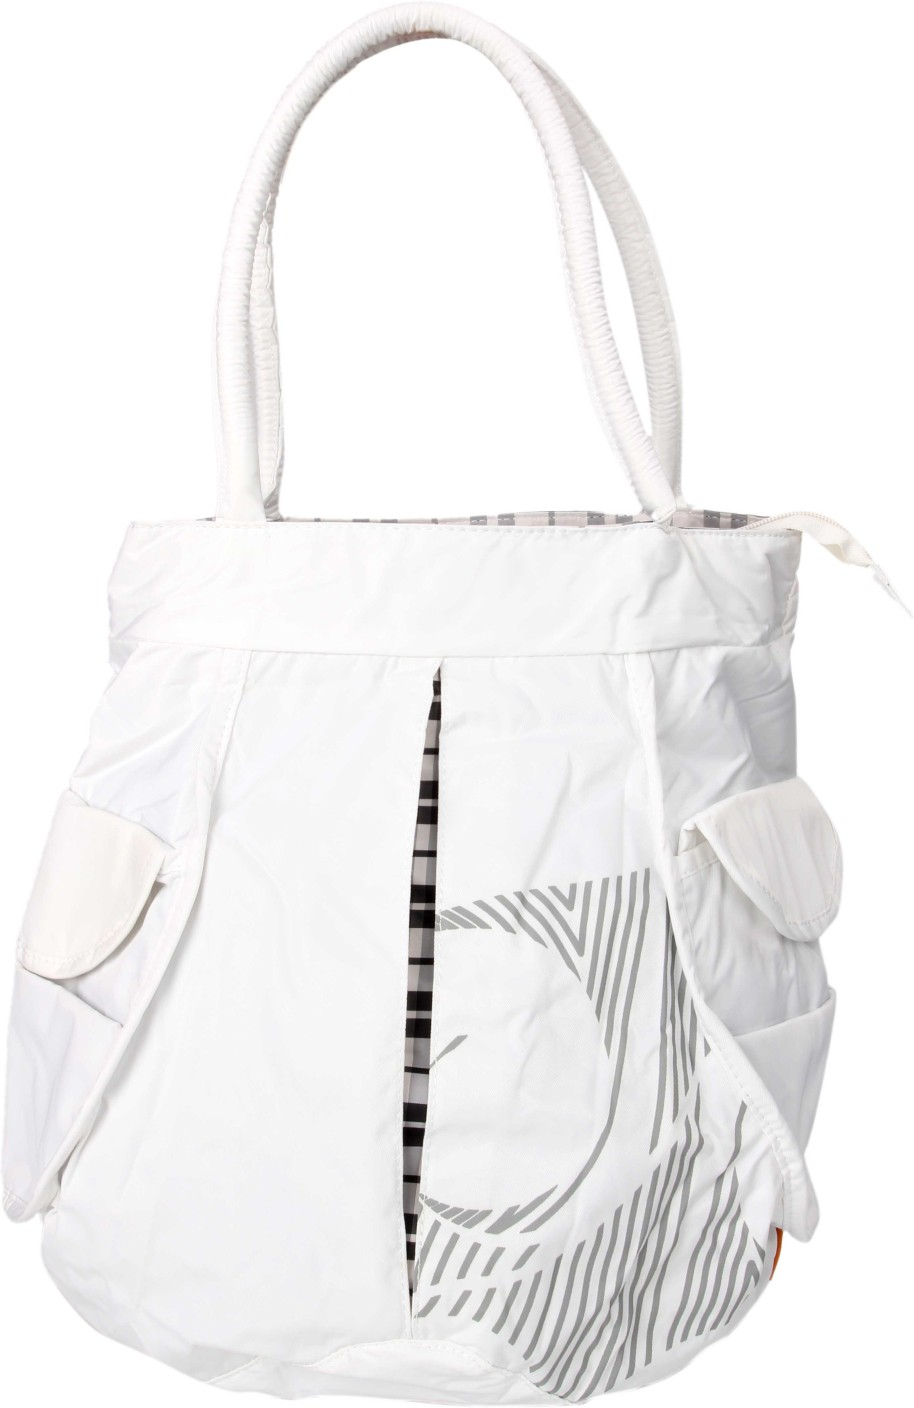 Buy Fastrack Shoulder Bag White Online @ Best Price in India | Flipkart.com